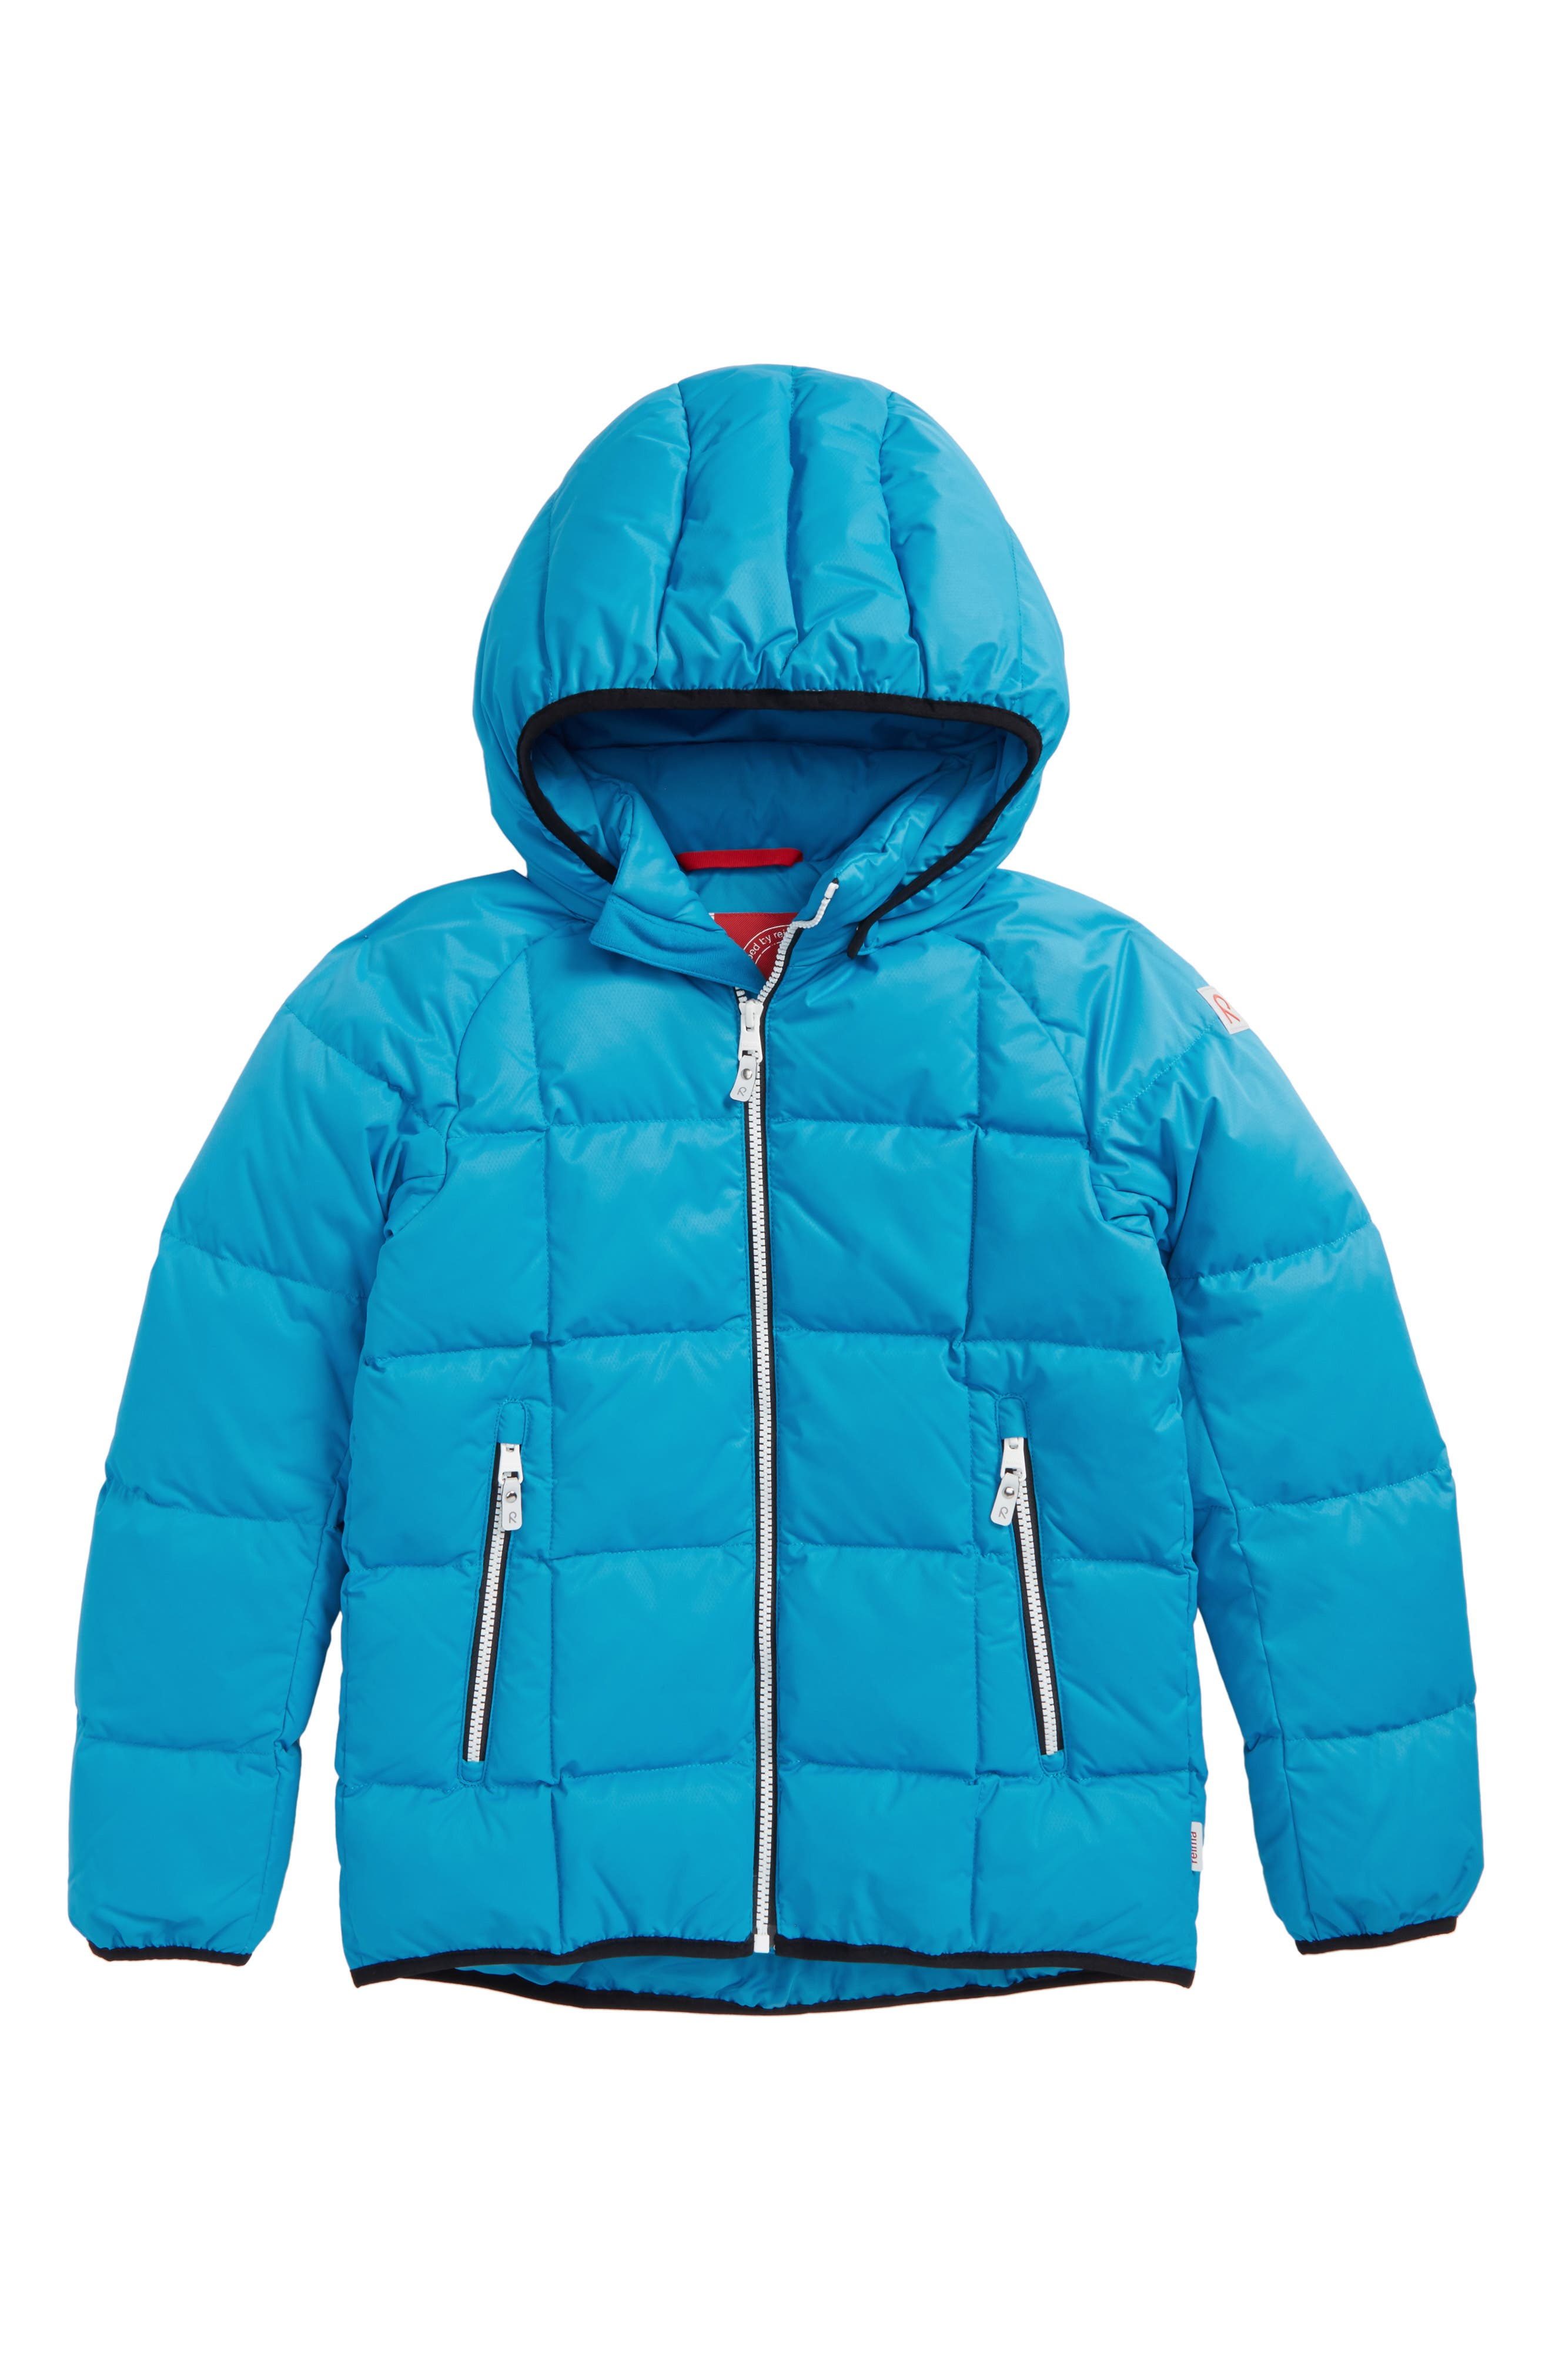 Jord Down Waterproof Insulated Coat,                         Main,                         color, Blue